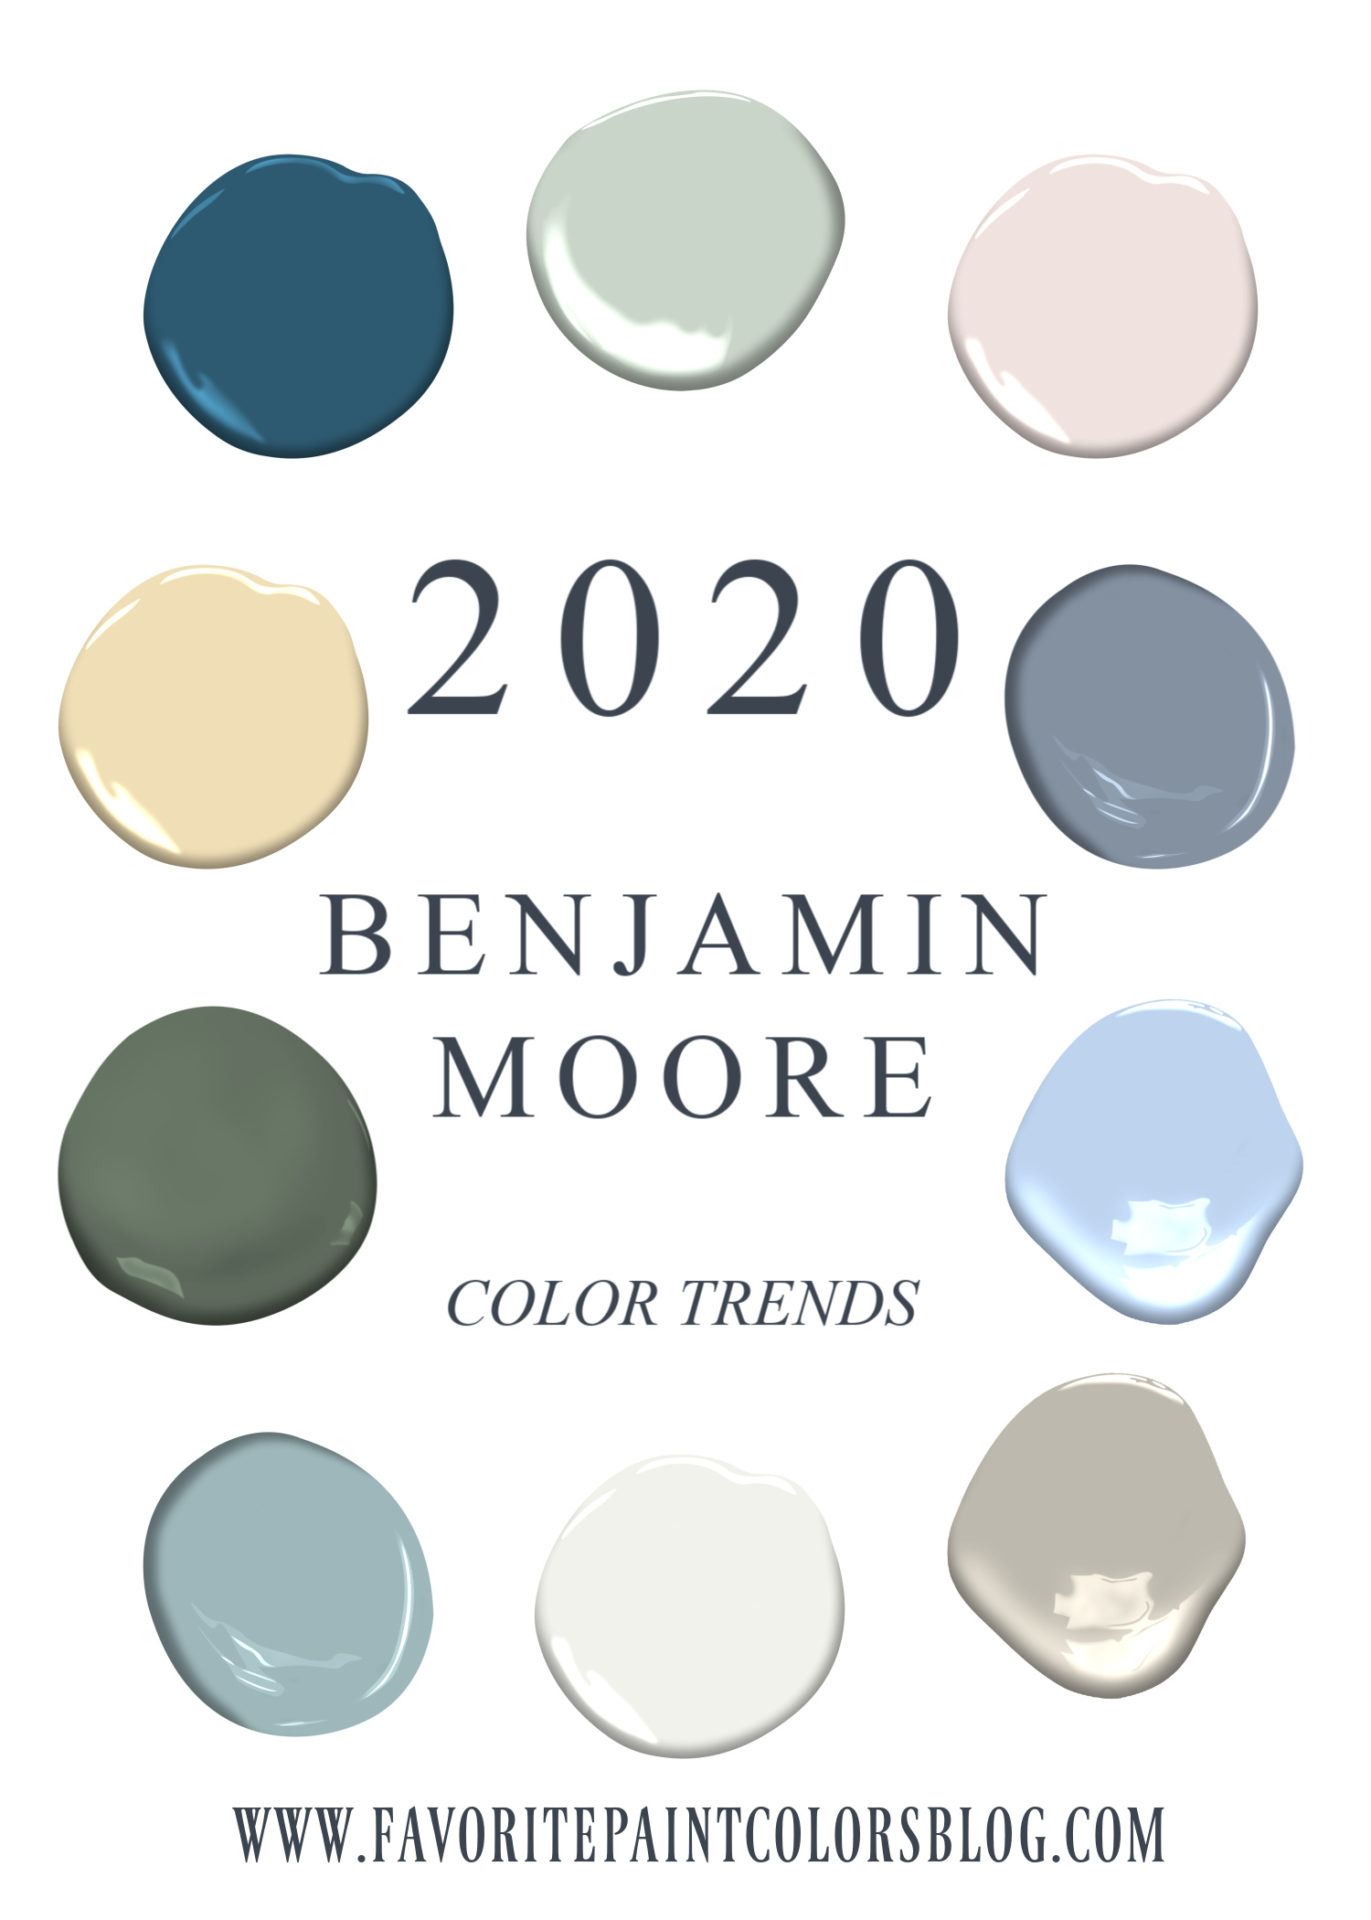 2020 Benjamin Moore Color Trends